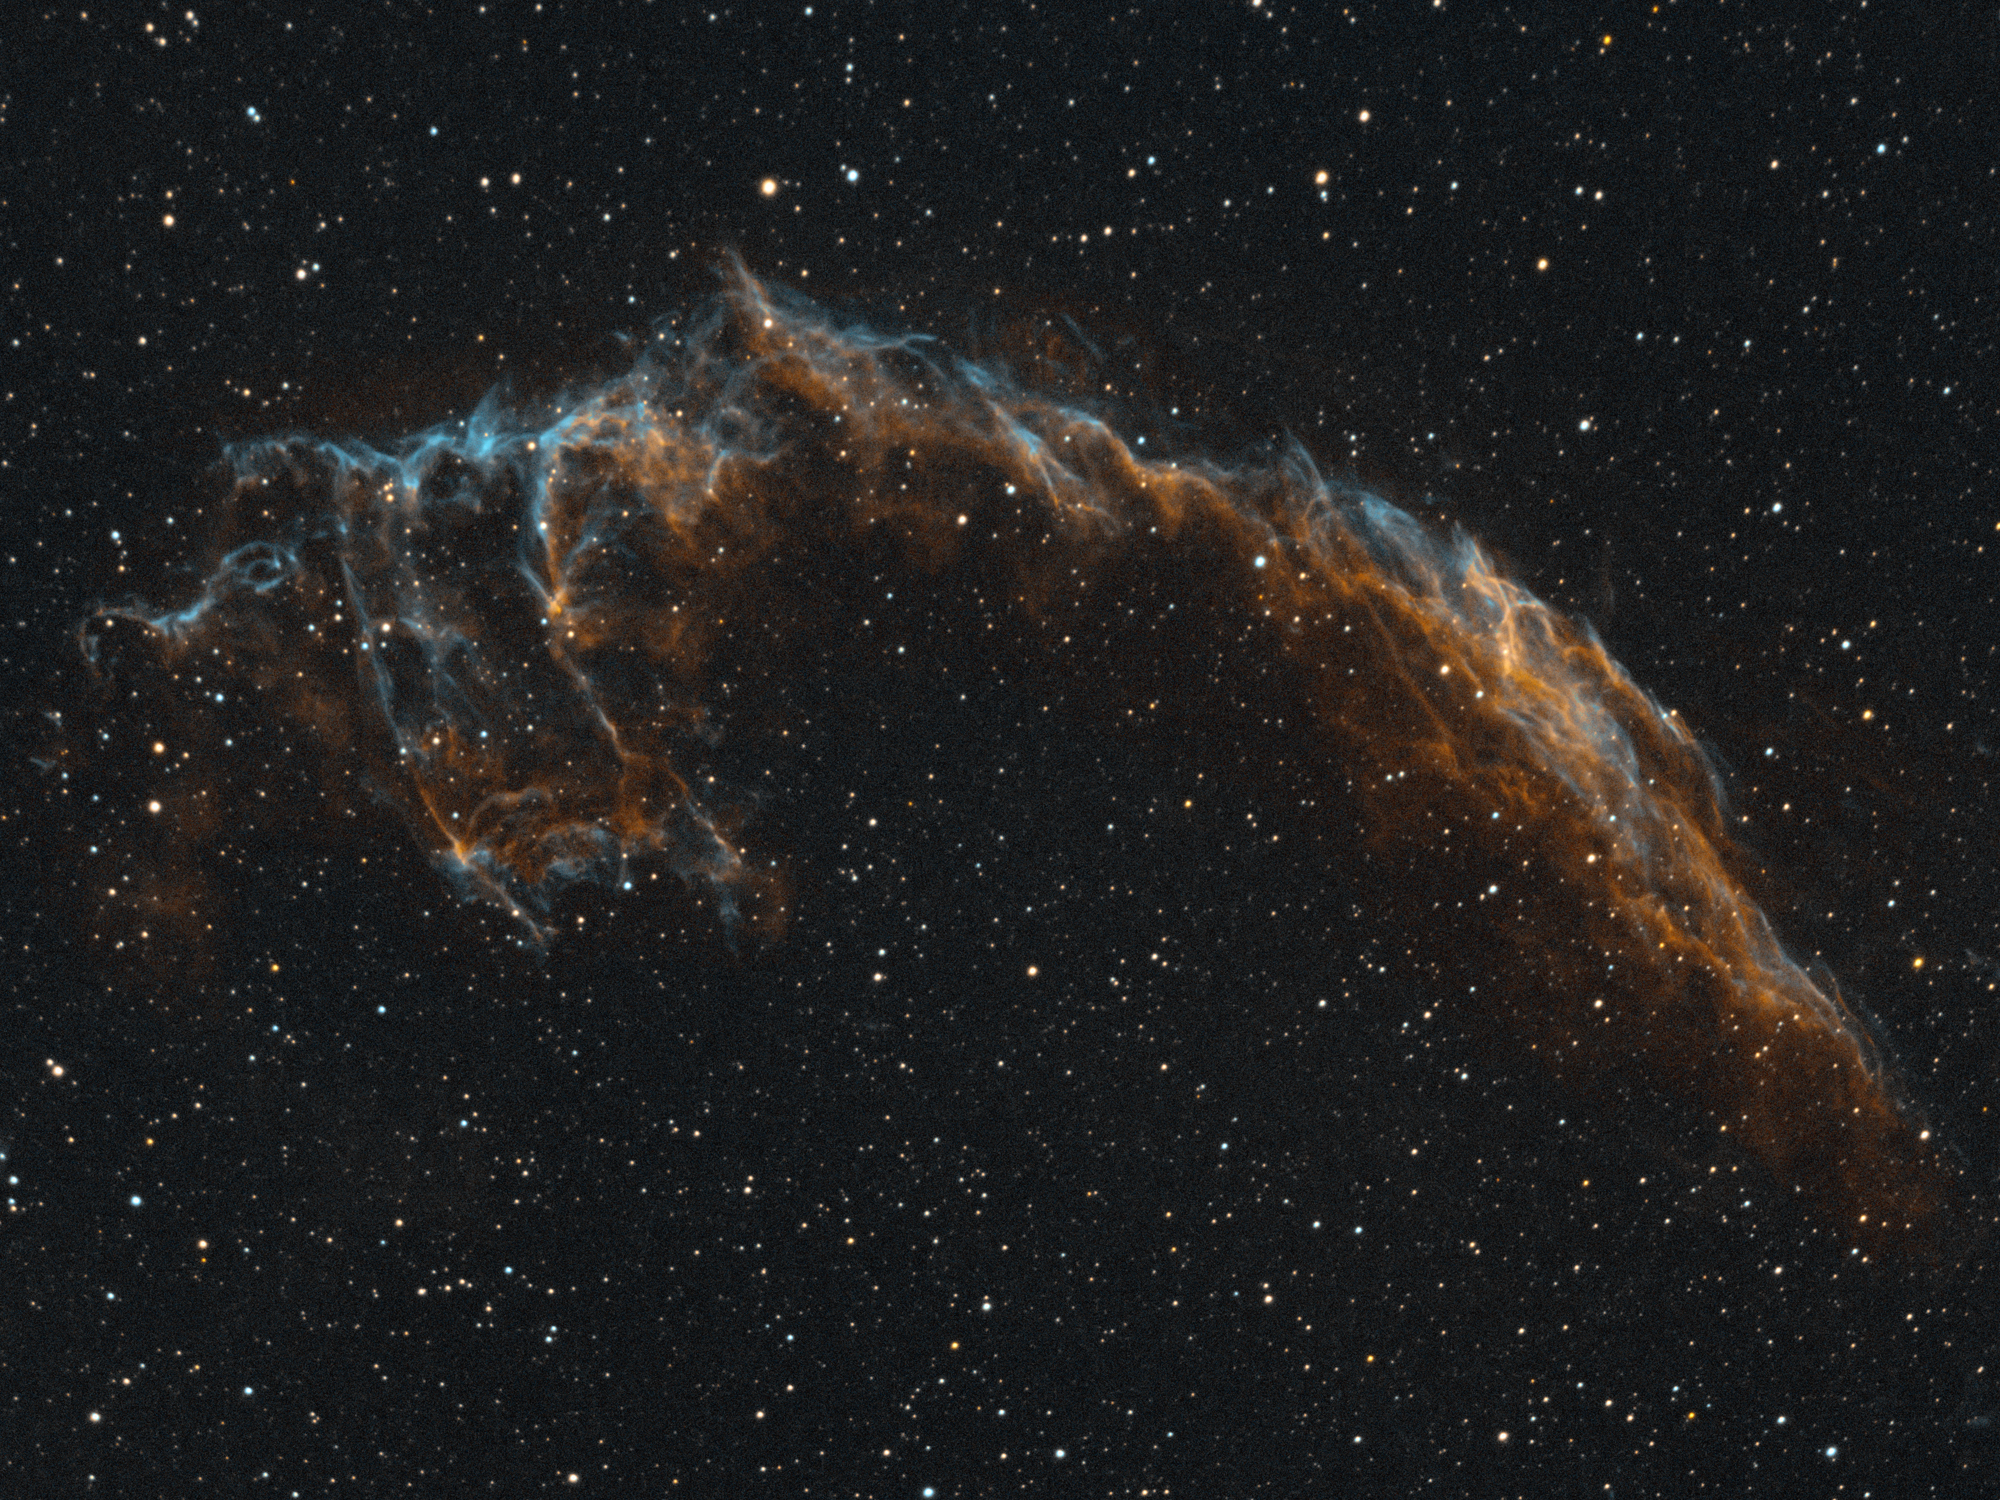 The Veil Nebula in Cygnus captured with a William Optics GT71 telescope and ASI183MM camera with Antlia 3.5nm HA and 03 filters